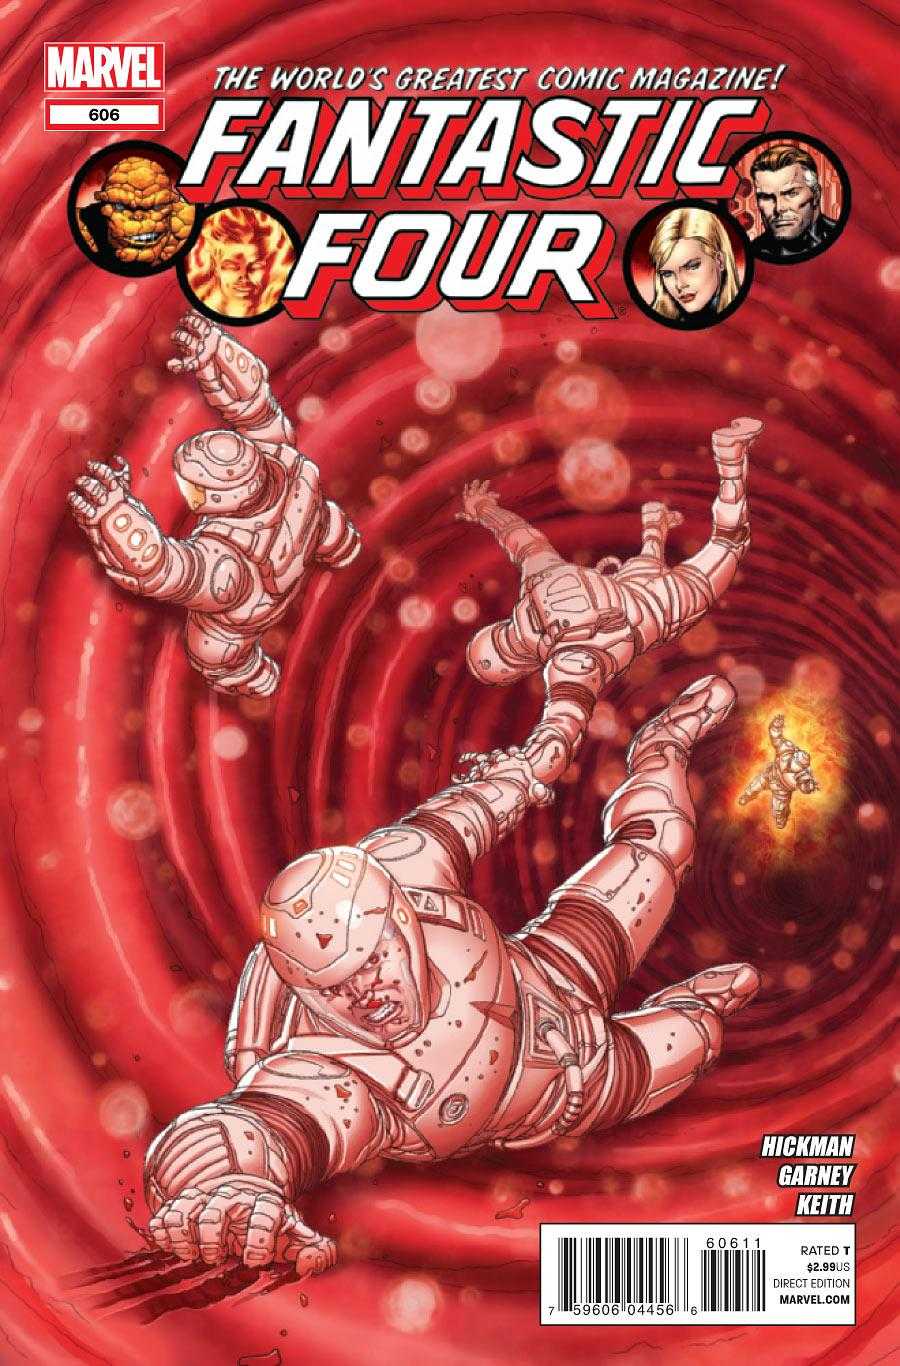 Fantastic Four Vol. 1 #606